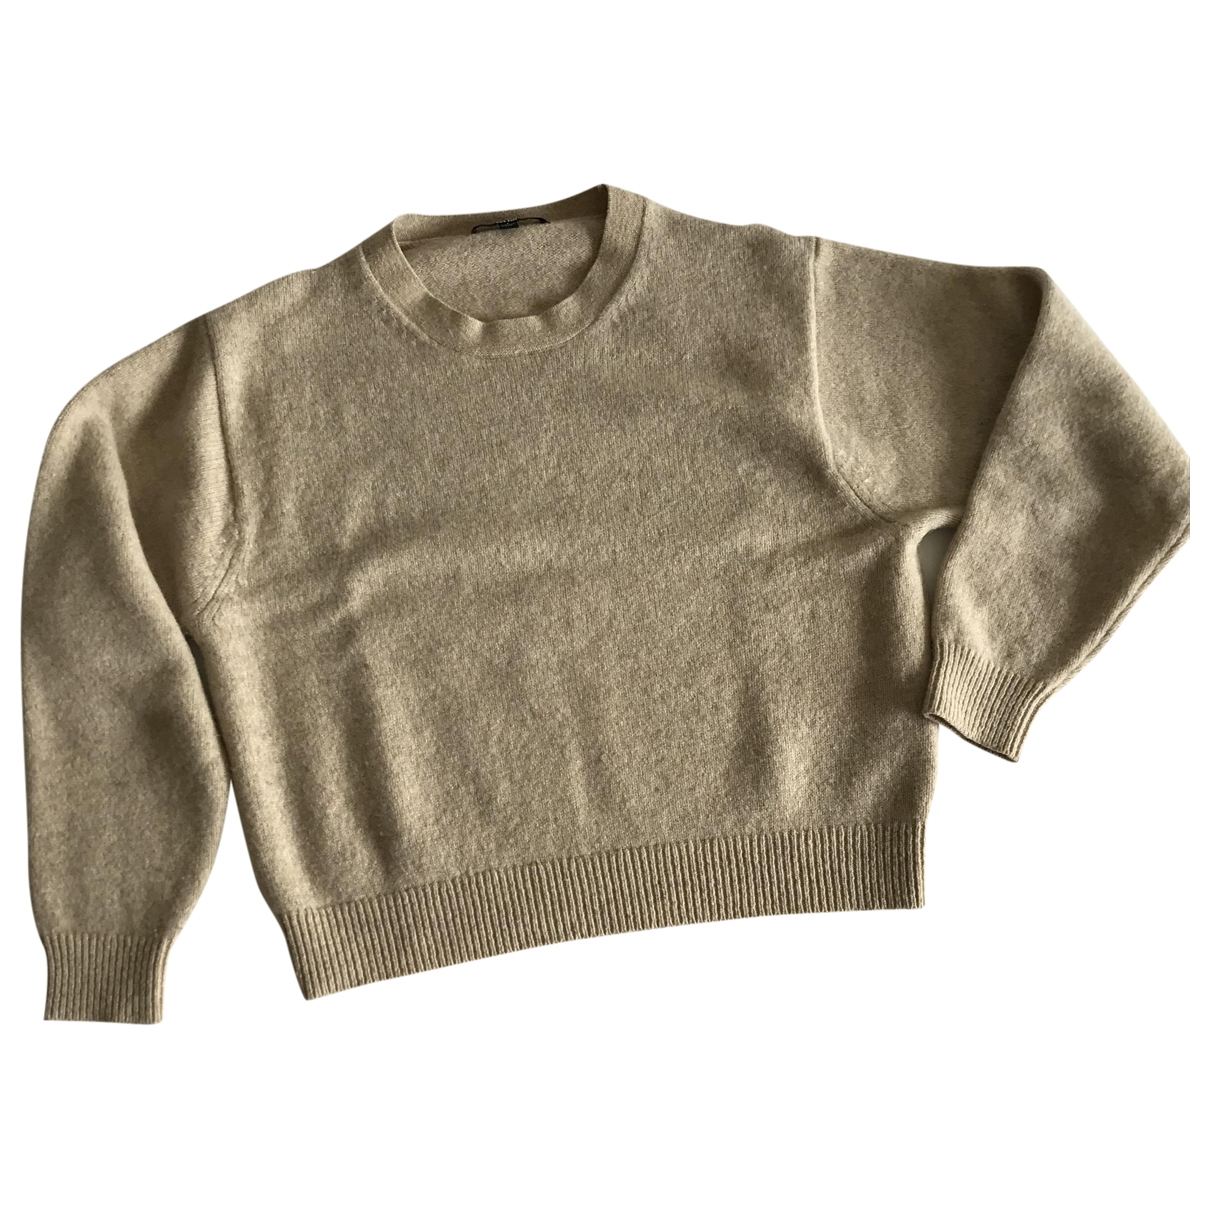 Uniqlo \N Beige Wool Knitwear for Women S International